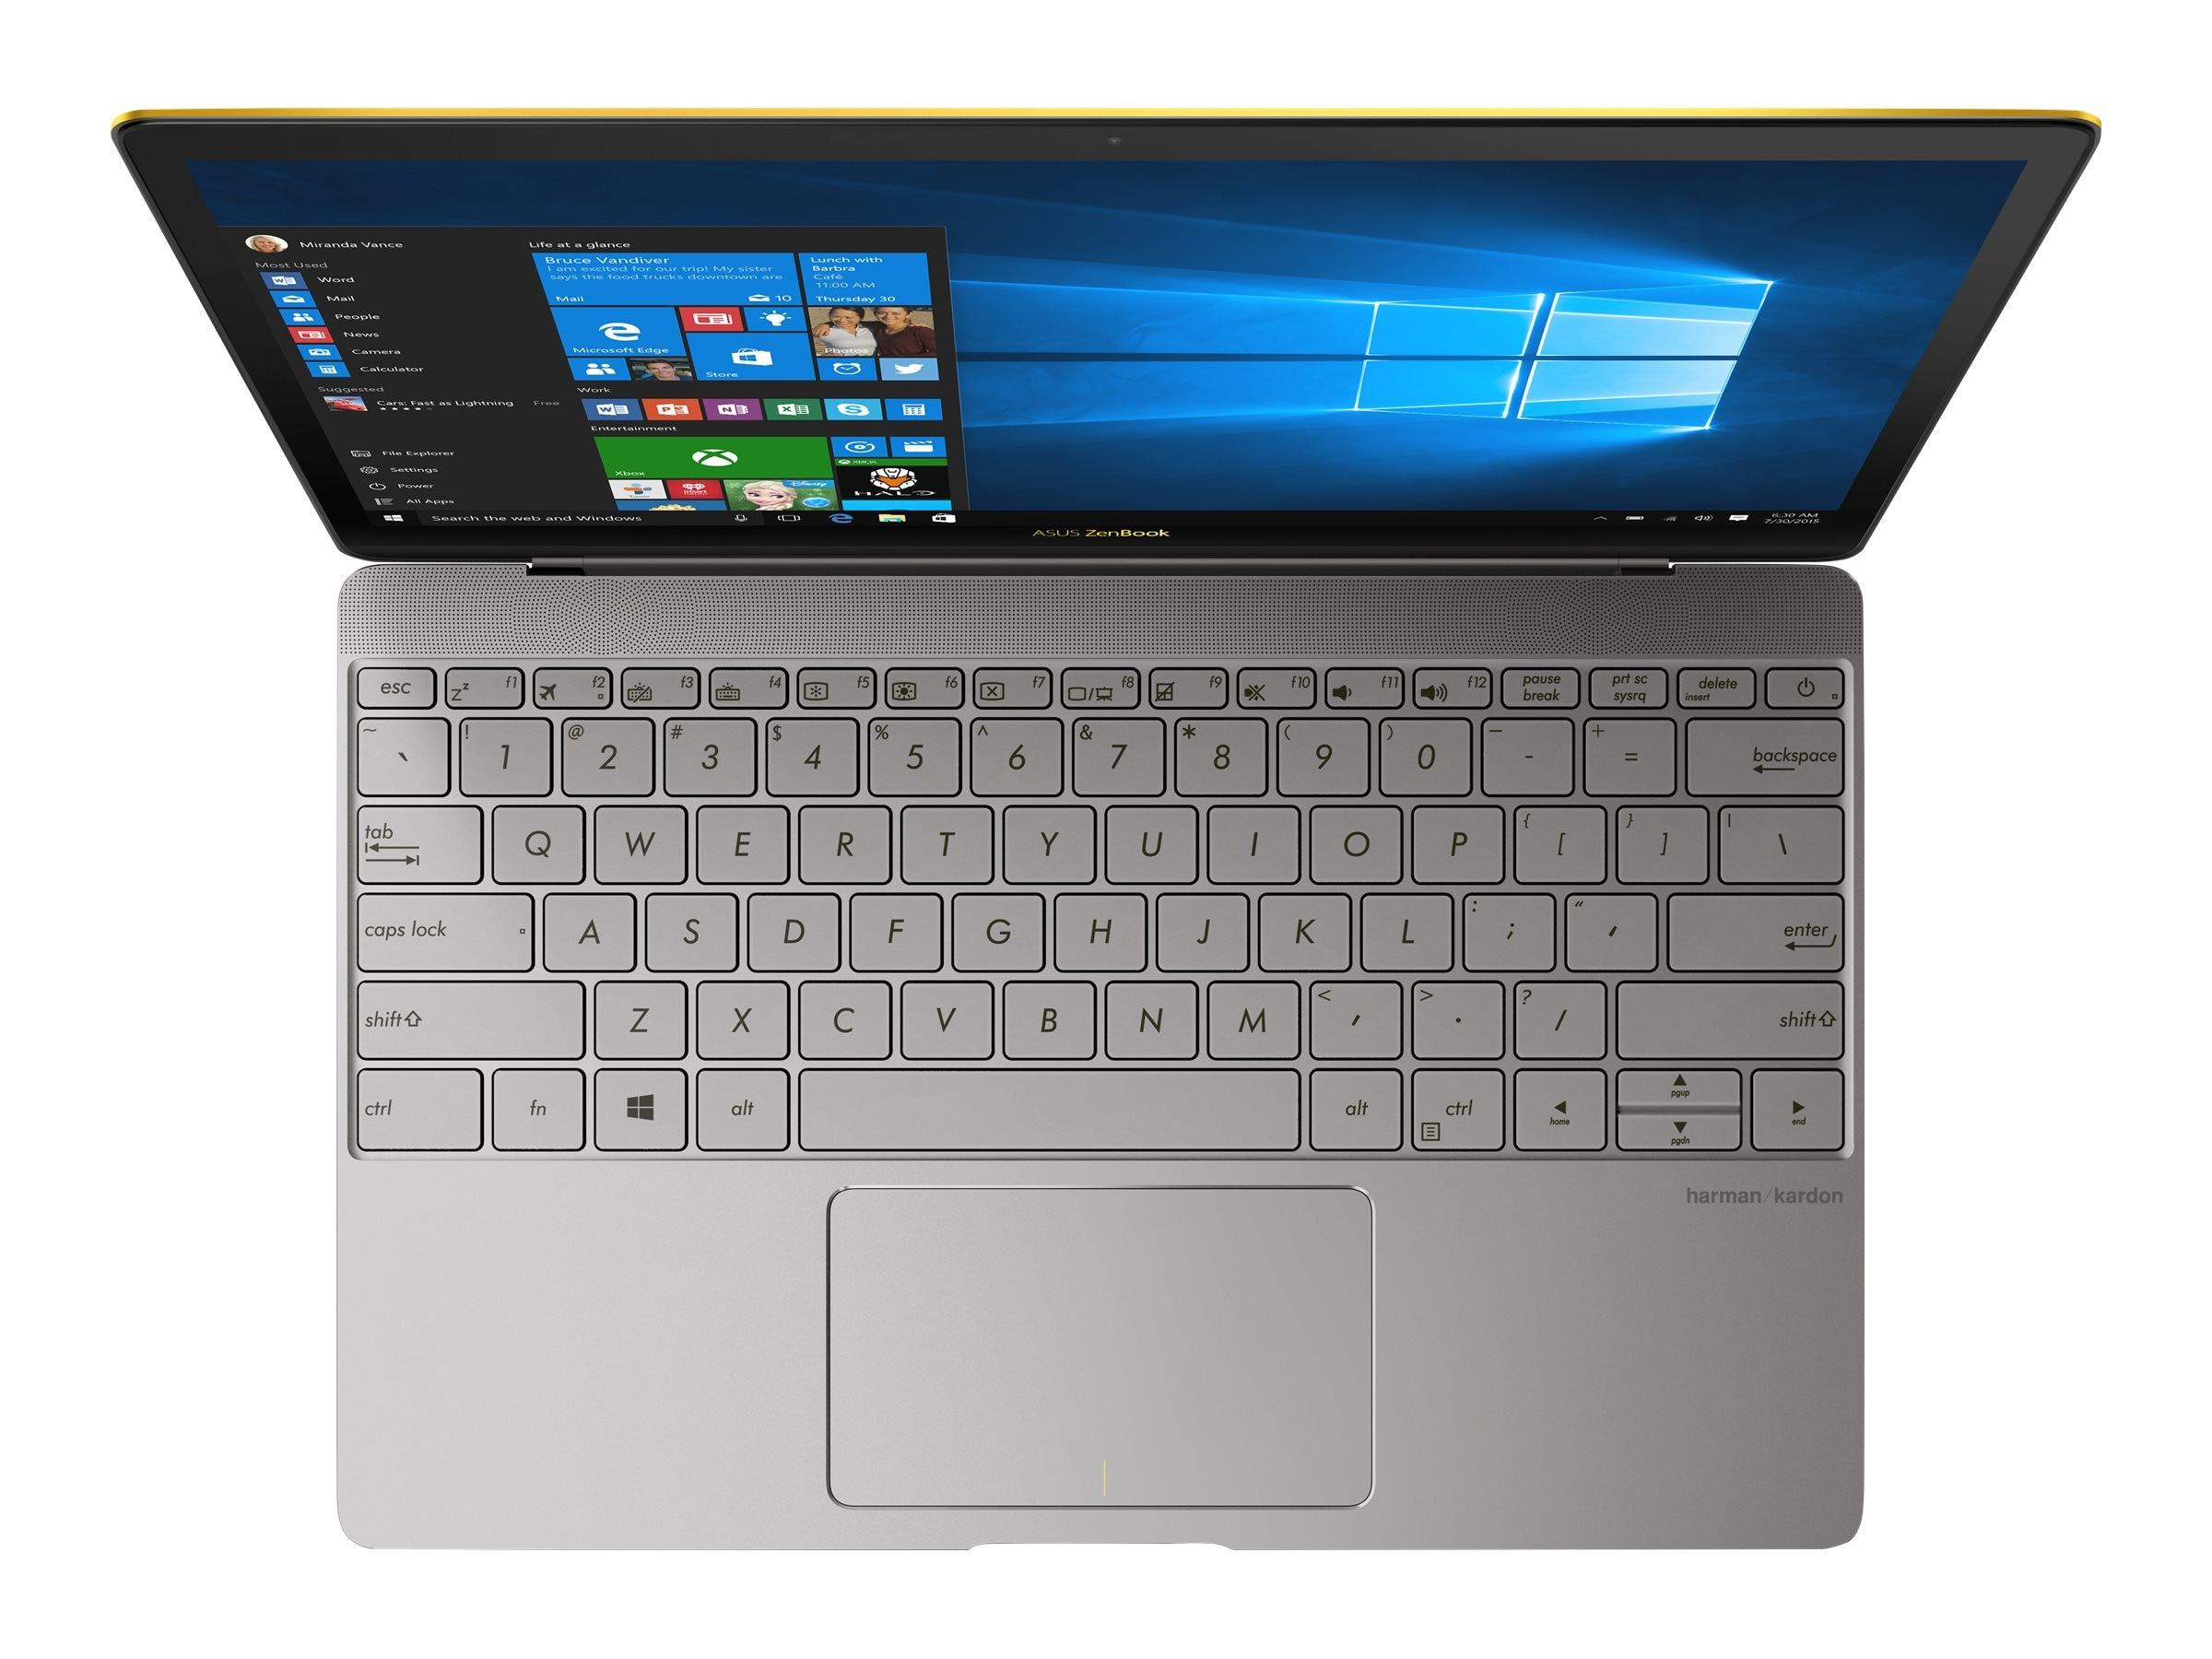 Asus Notebook PC Core i5-7200U 8GB 256GB 12.5 W10, 90NB0CZ3-M03530